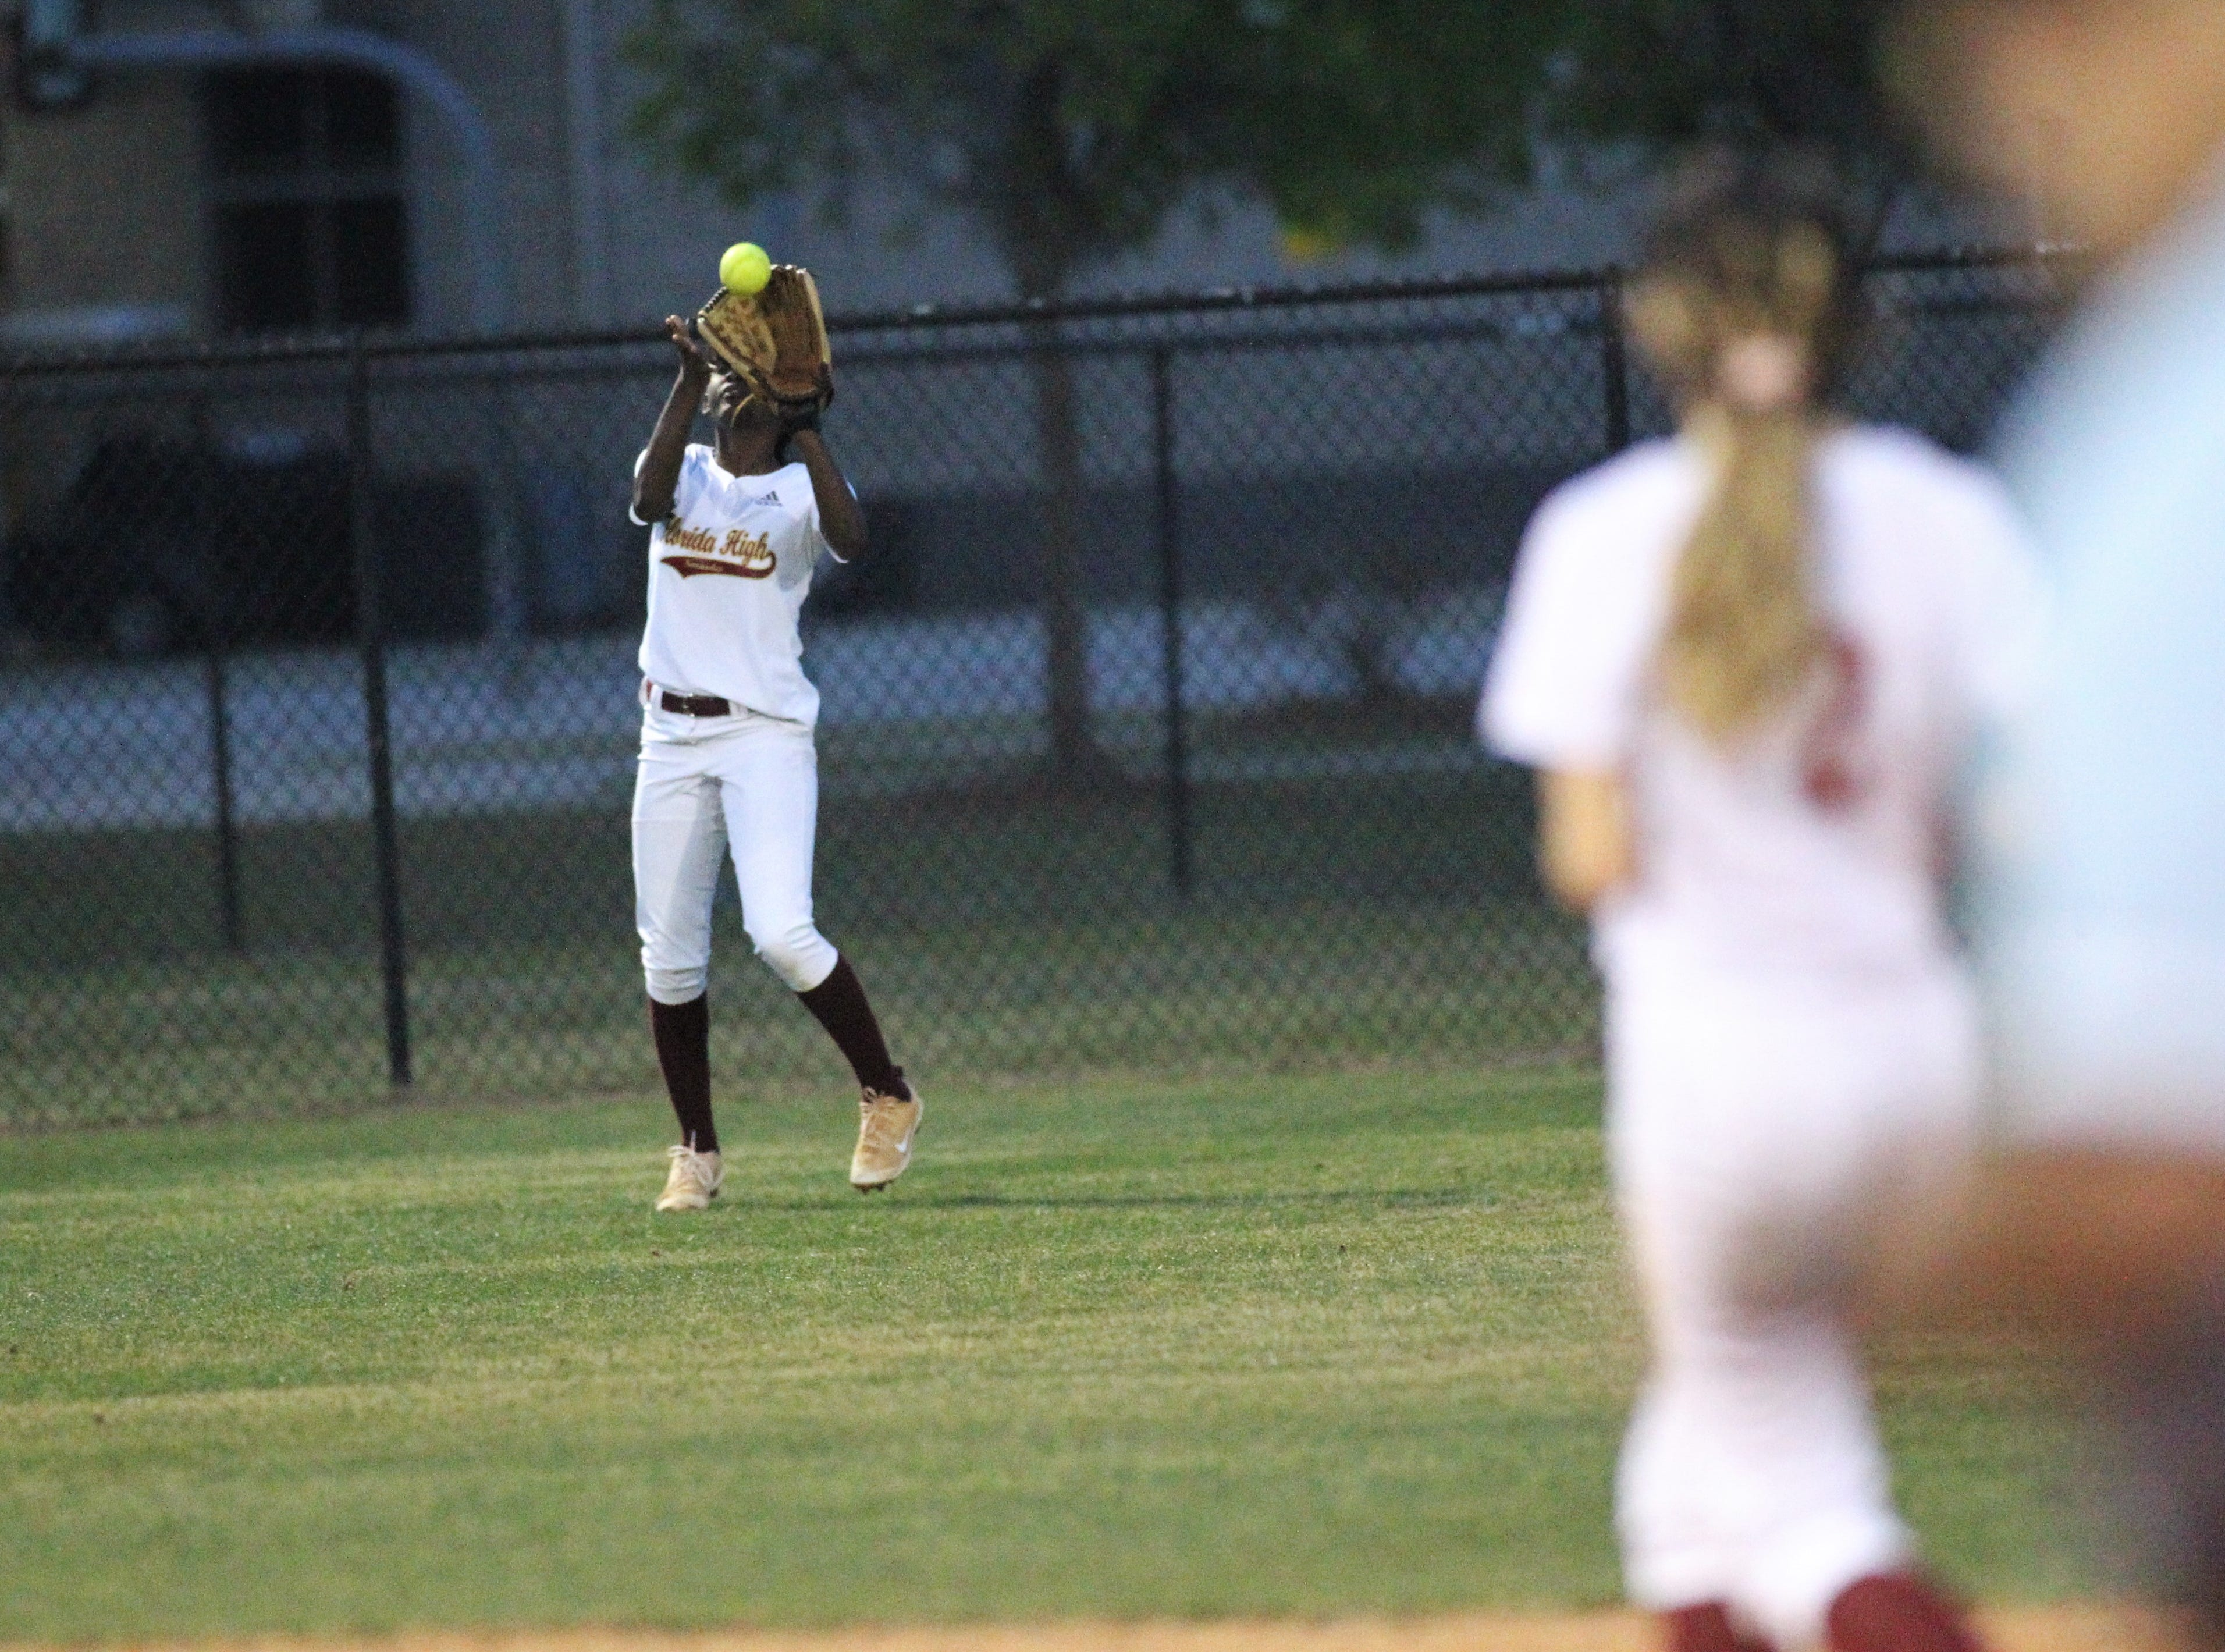 Florida High freshman outfielder Jordyn still catches a fly ball as Lincoln's softball team beat Florida High 7-3 on Thursday, April 4, 2019.